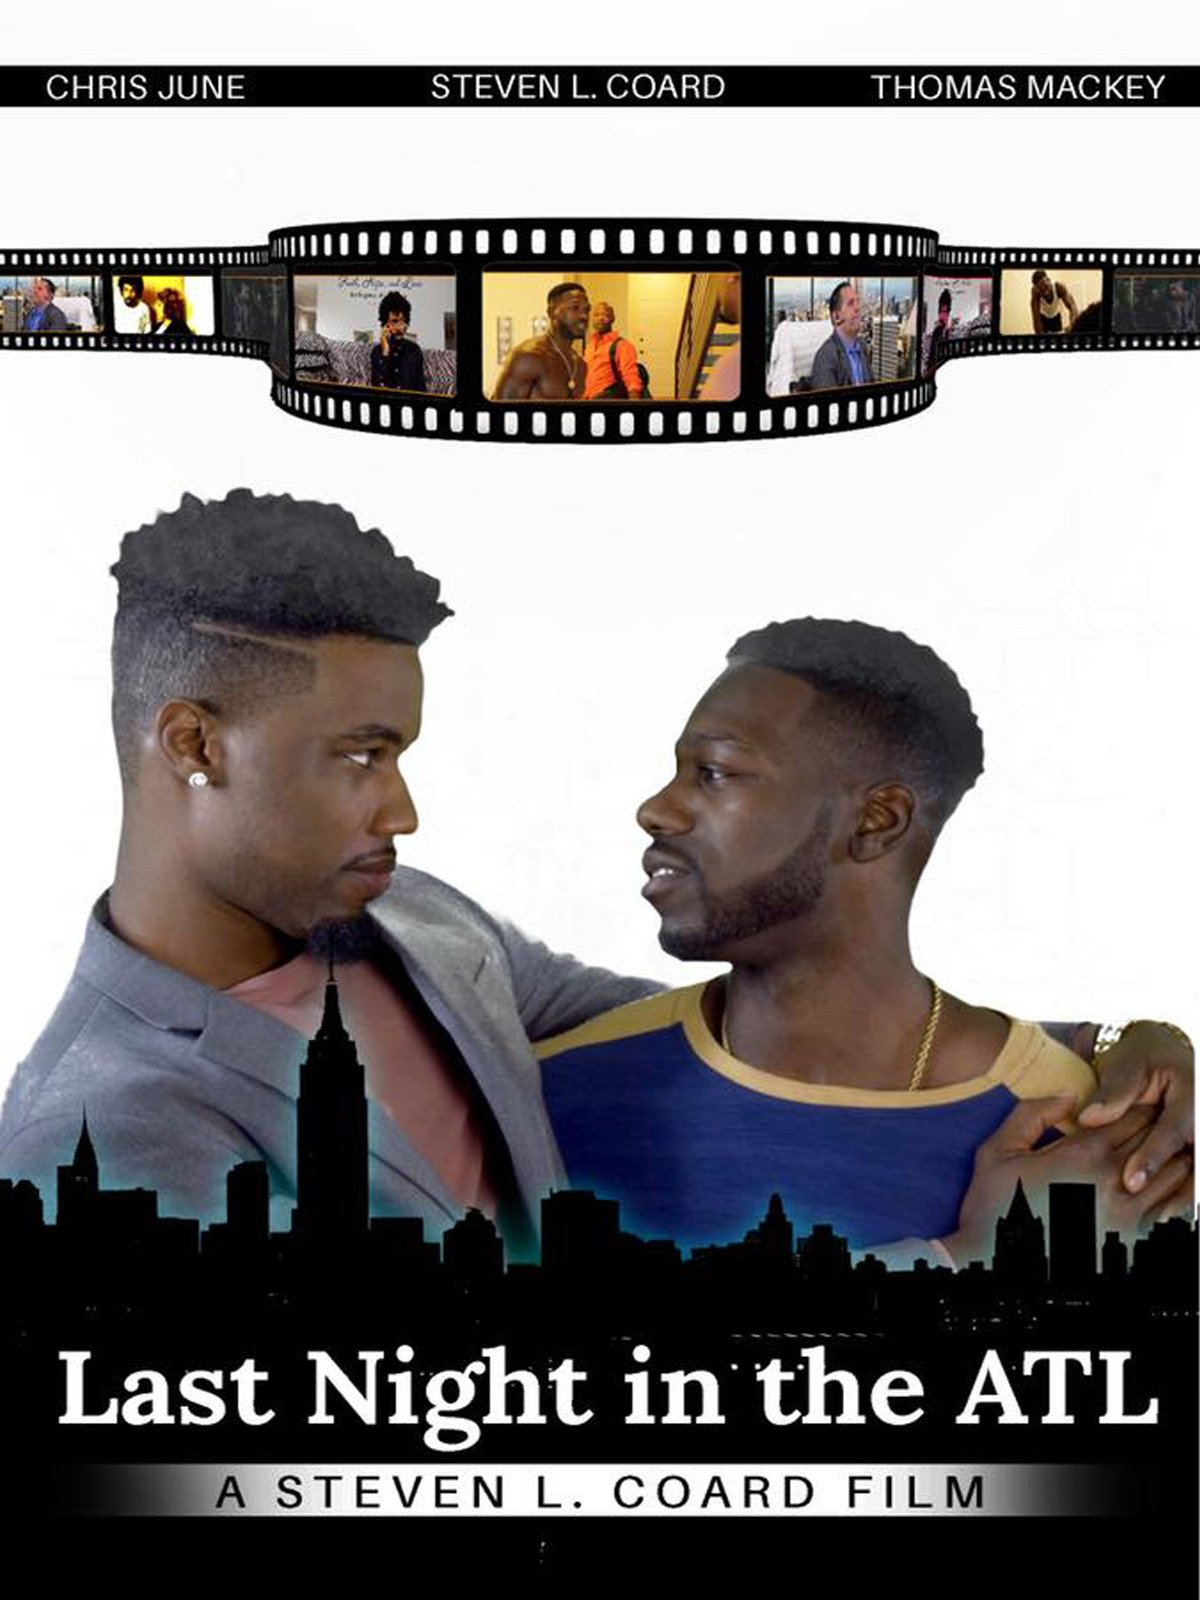 Last night in the ATL Film